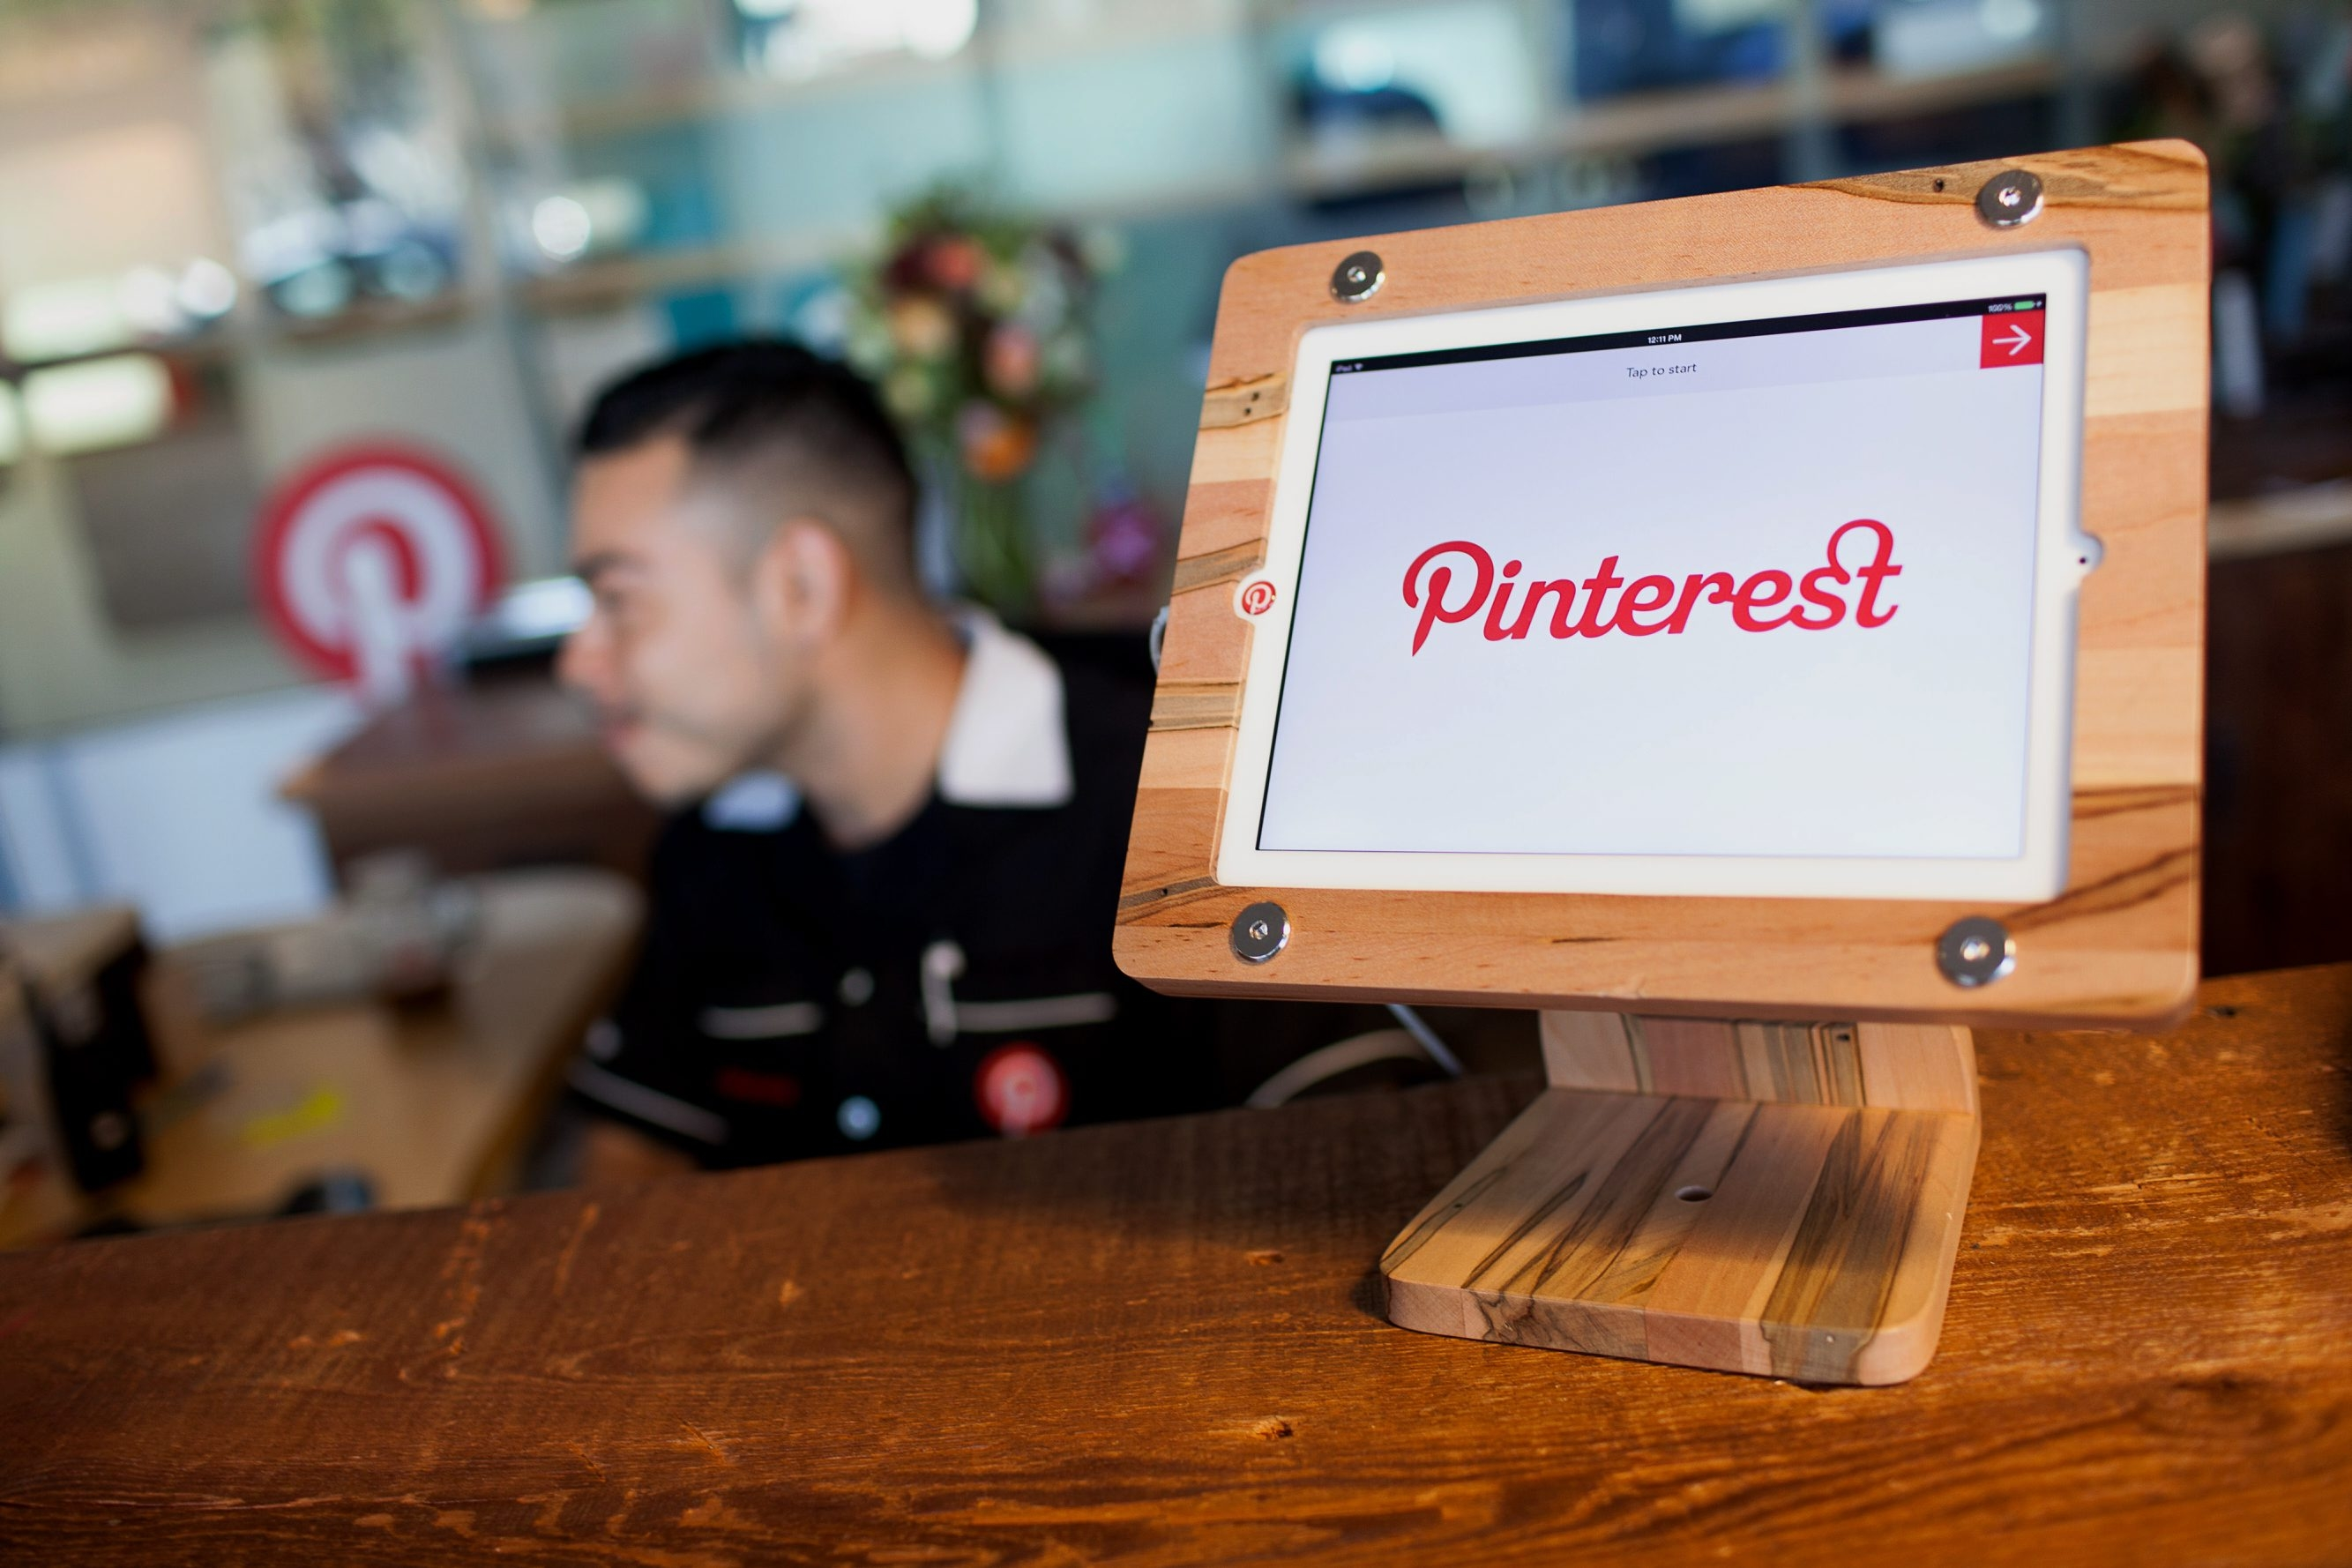 Pinterest Inc. signage is seen on an Apple iPad at the reception desk of the company's headquarters in San Francisco in November. Pinterest, which wants to compete for ad dollars with the likes of Google, Twitter and Facebook, plans to start selling ads on the site to any marketer on New Year's Day.